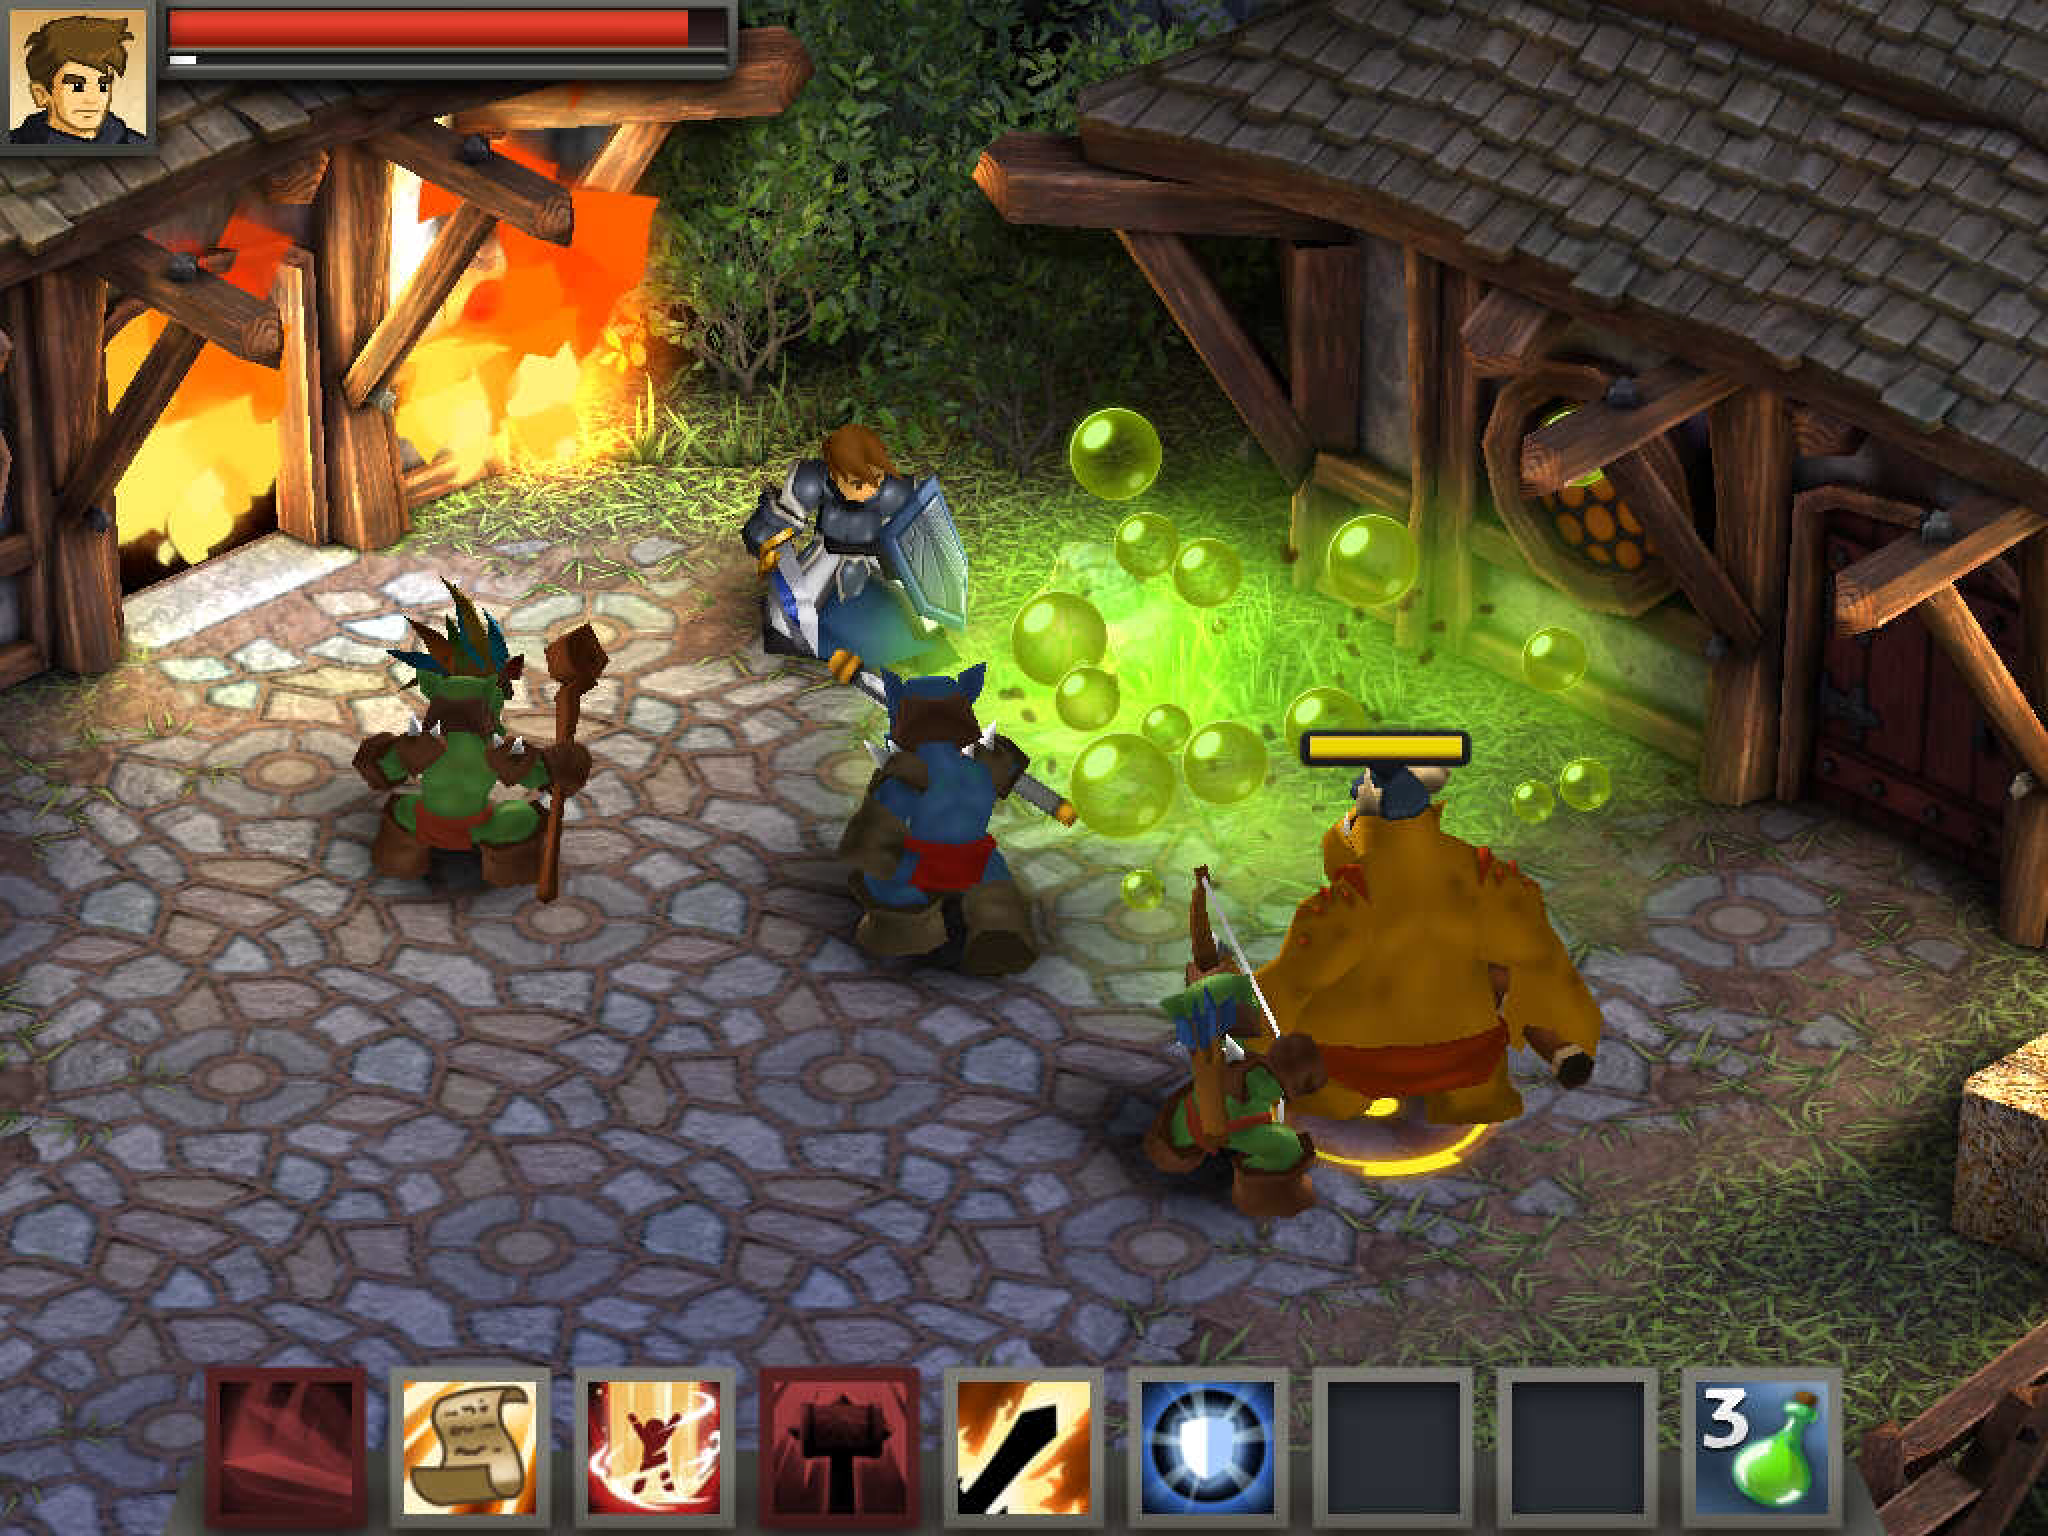 Battleheart Legacy characters gathered around green bubbles